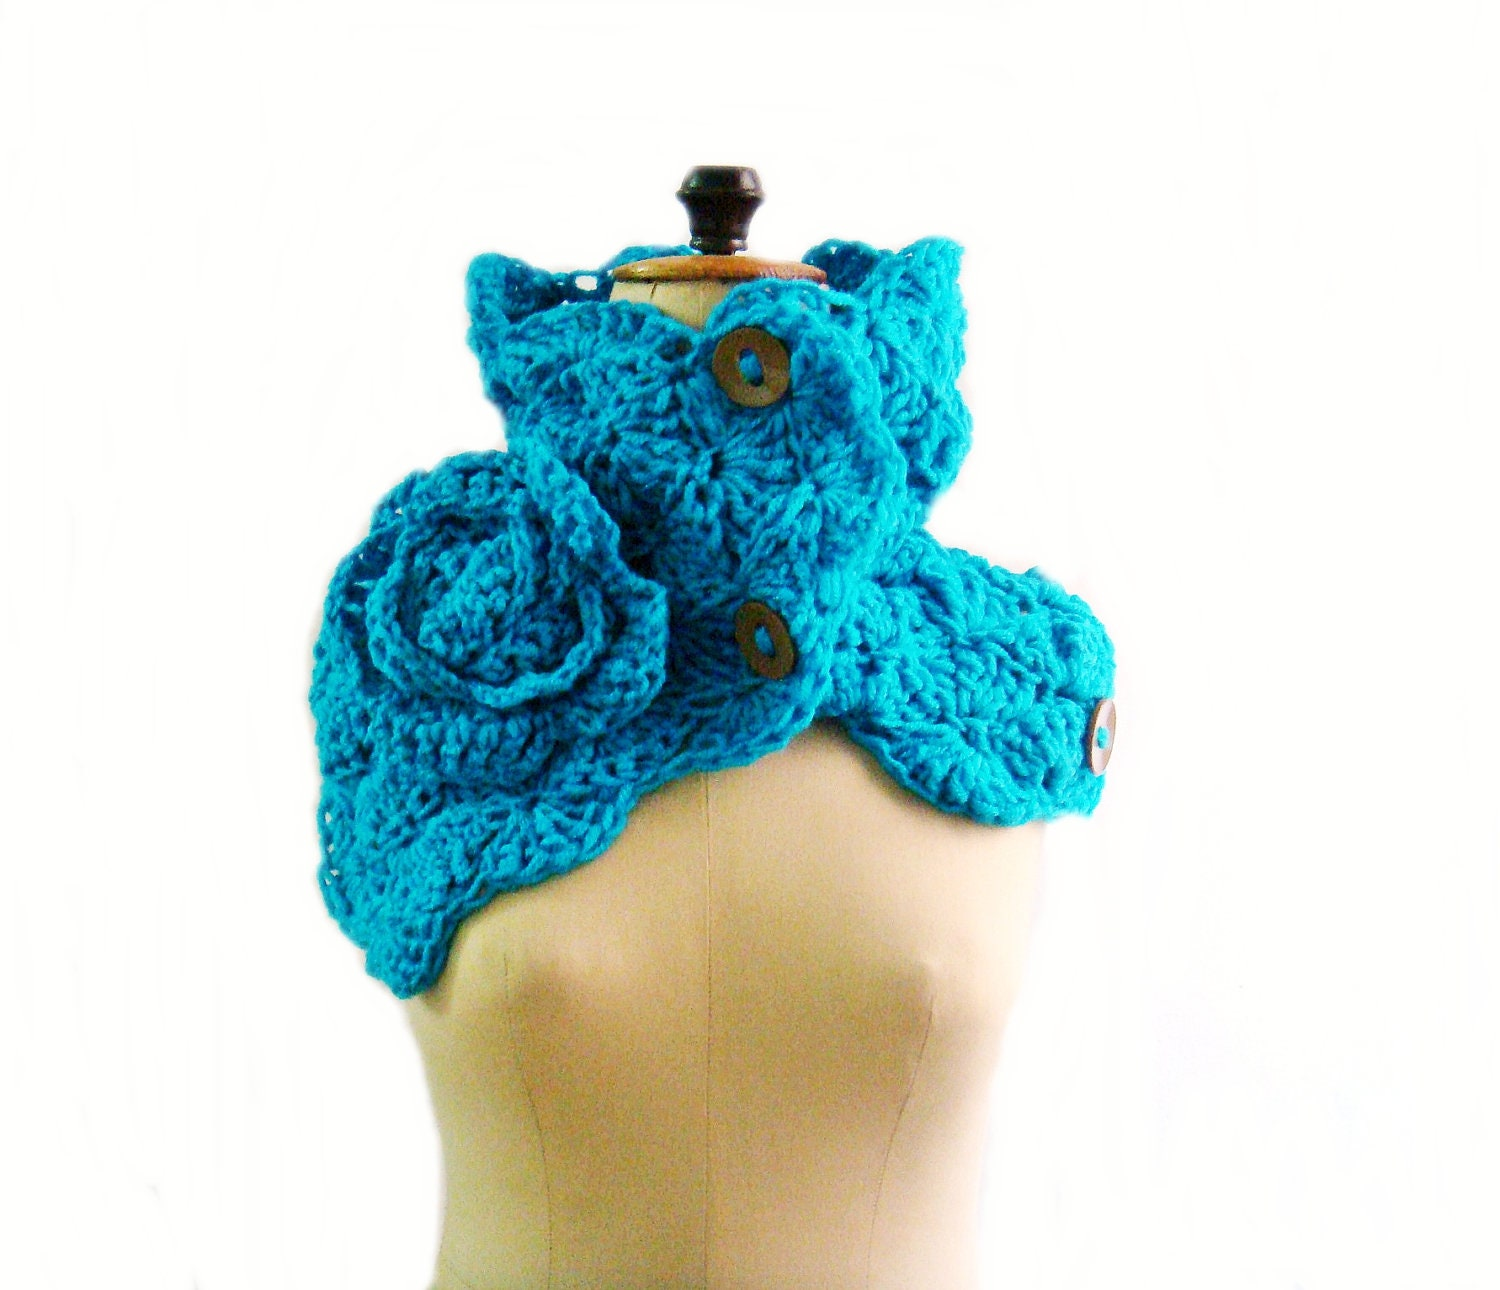 Crochet Scarf Pattern With Button : CROCHET PATTERN Button Up Chunky Cowl Crochet Scarf Pattern